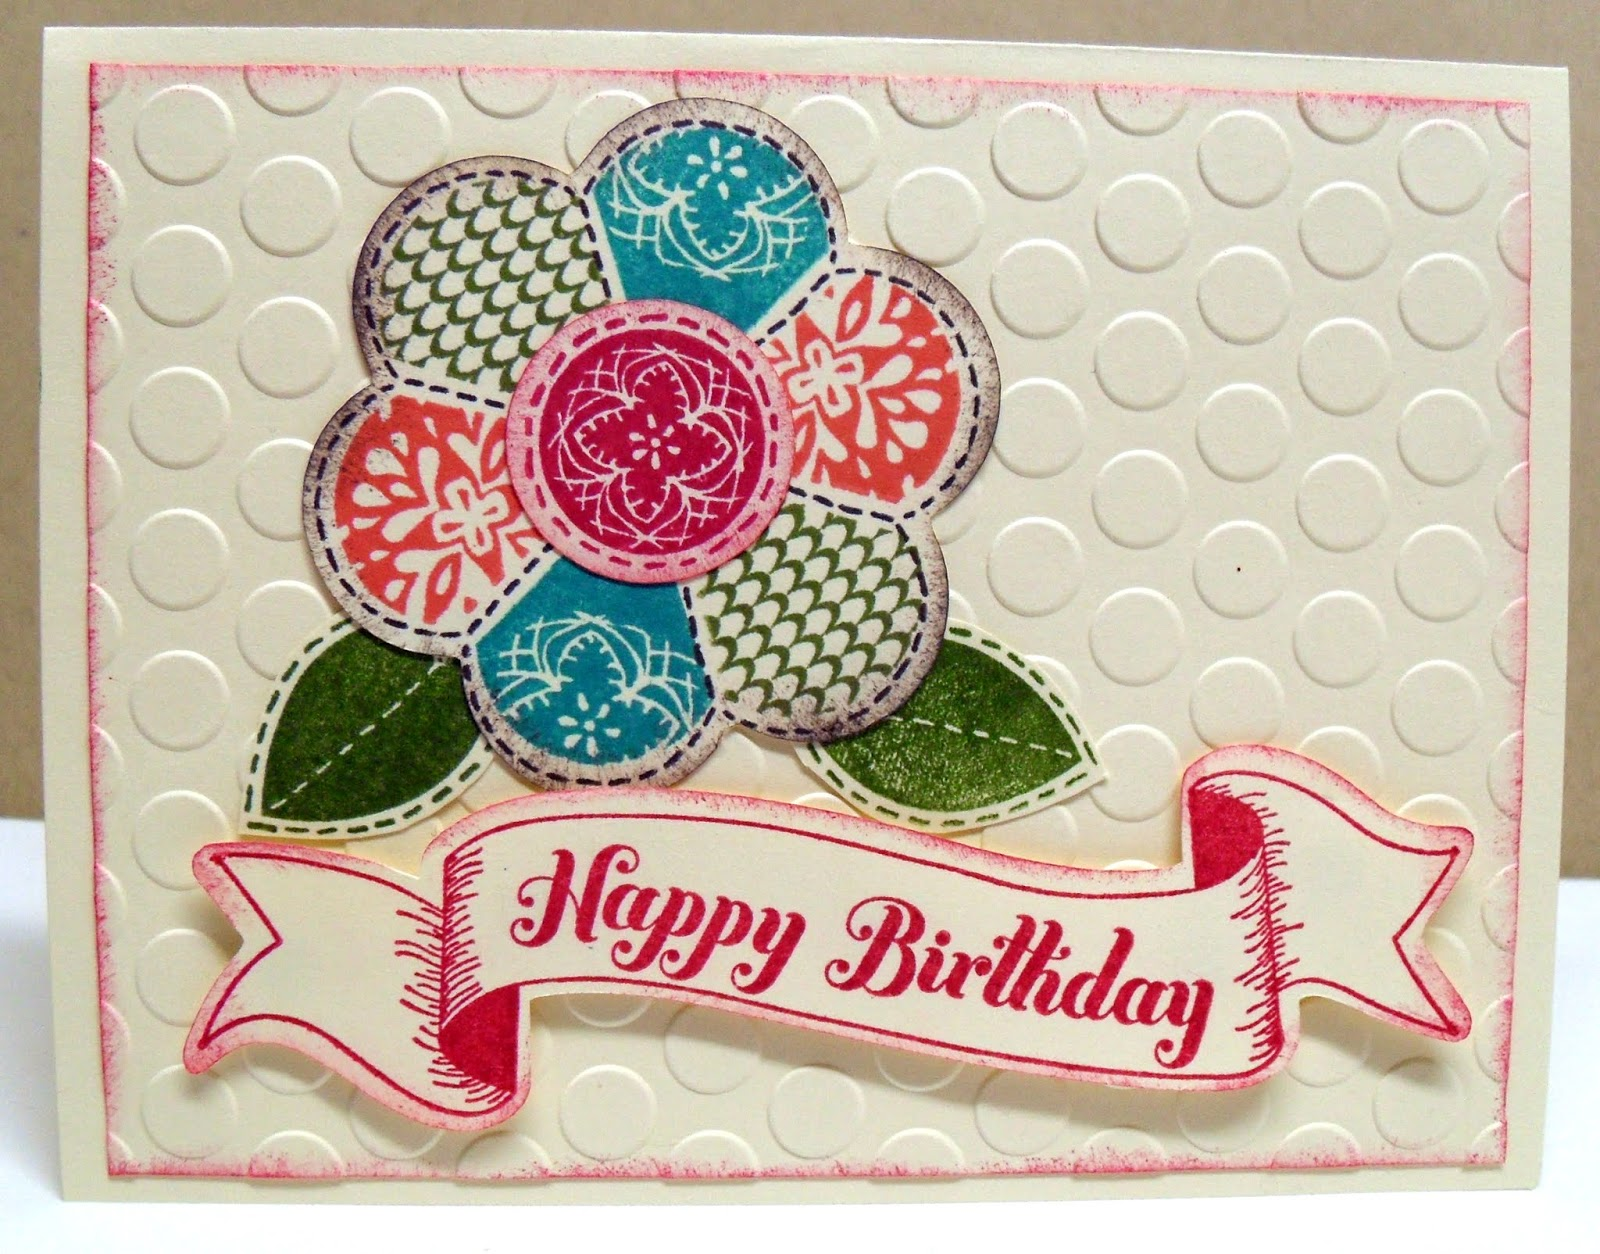 Happy Birthday Cards Coloring Kids - Free childrens birthday verses for cards